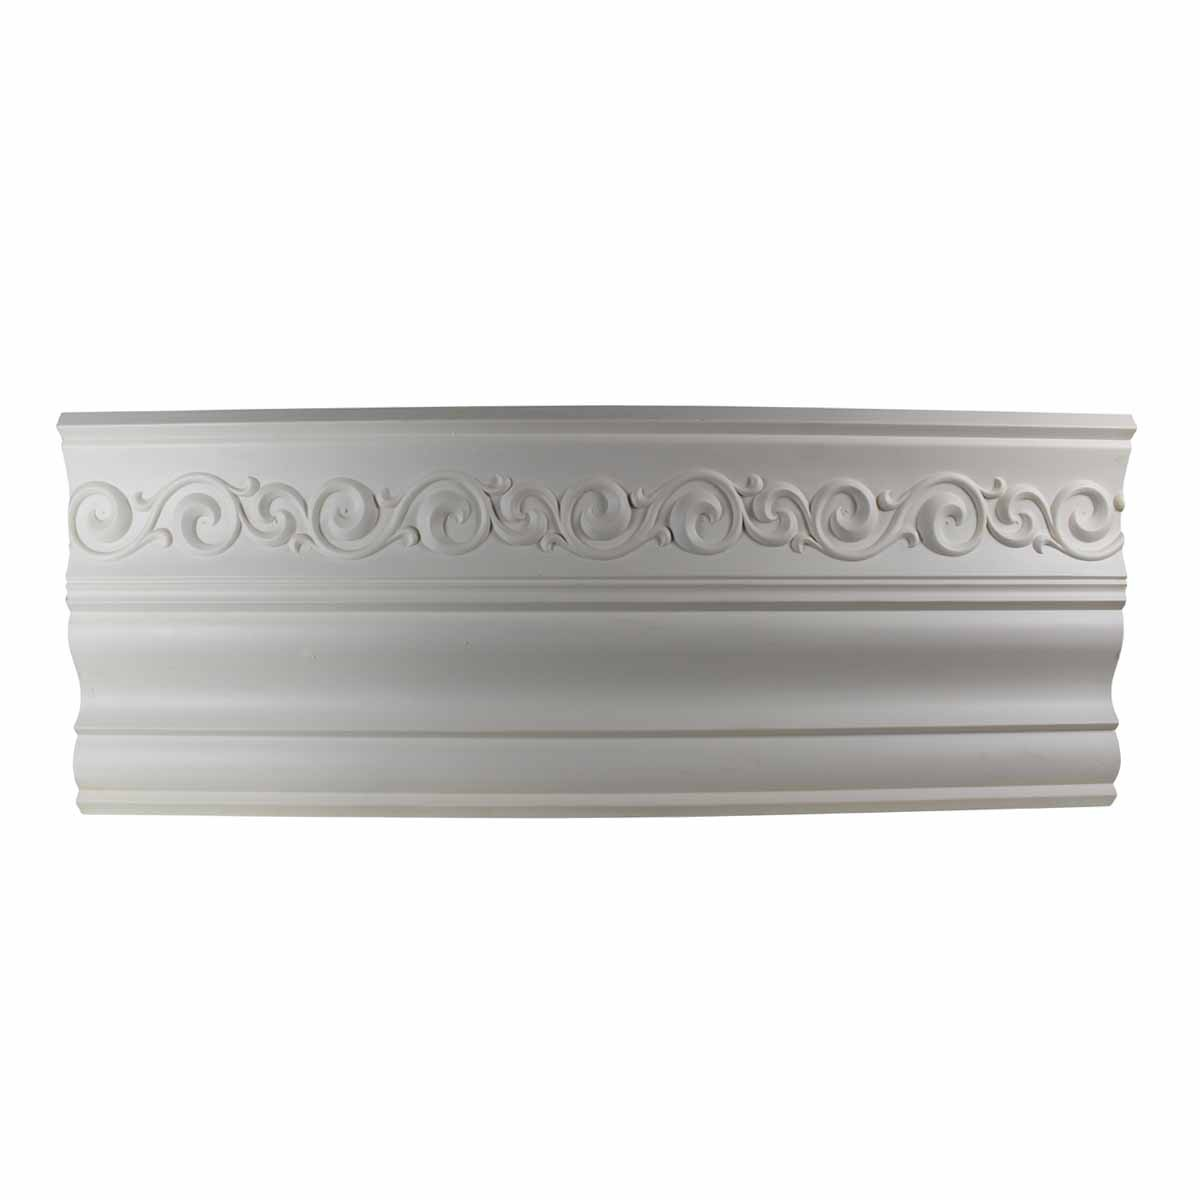 Cornice White Urethane Sample of 10978 23.5 Long Cornice Cornice Moulding Cornice Molding